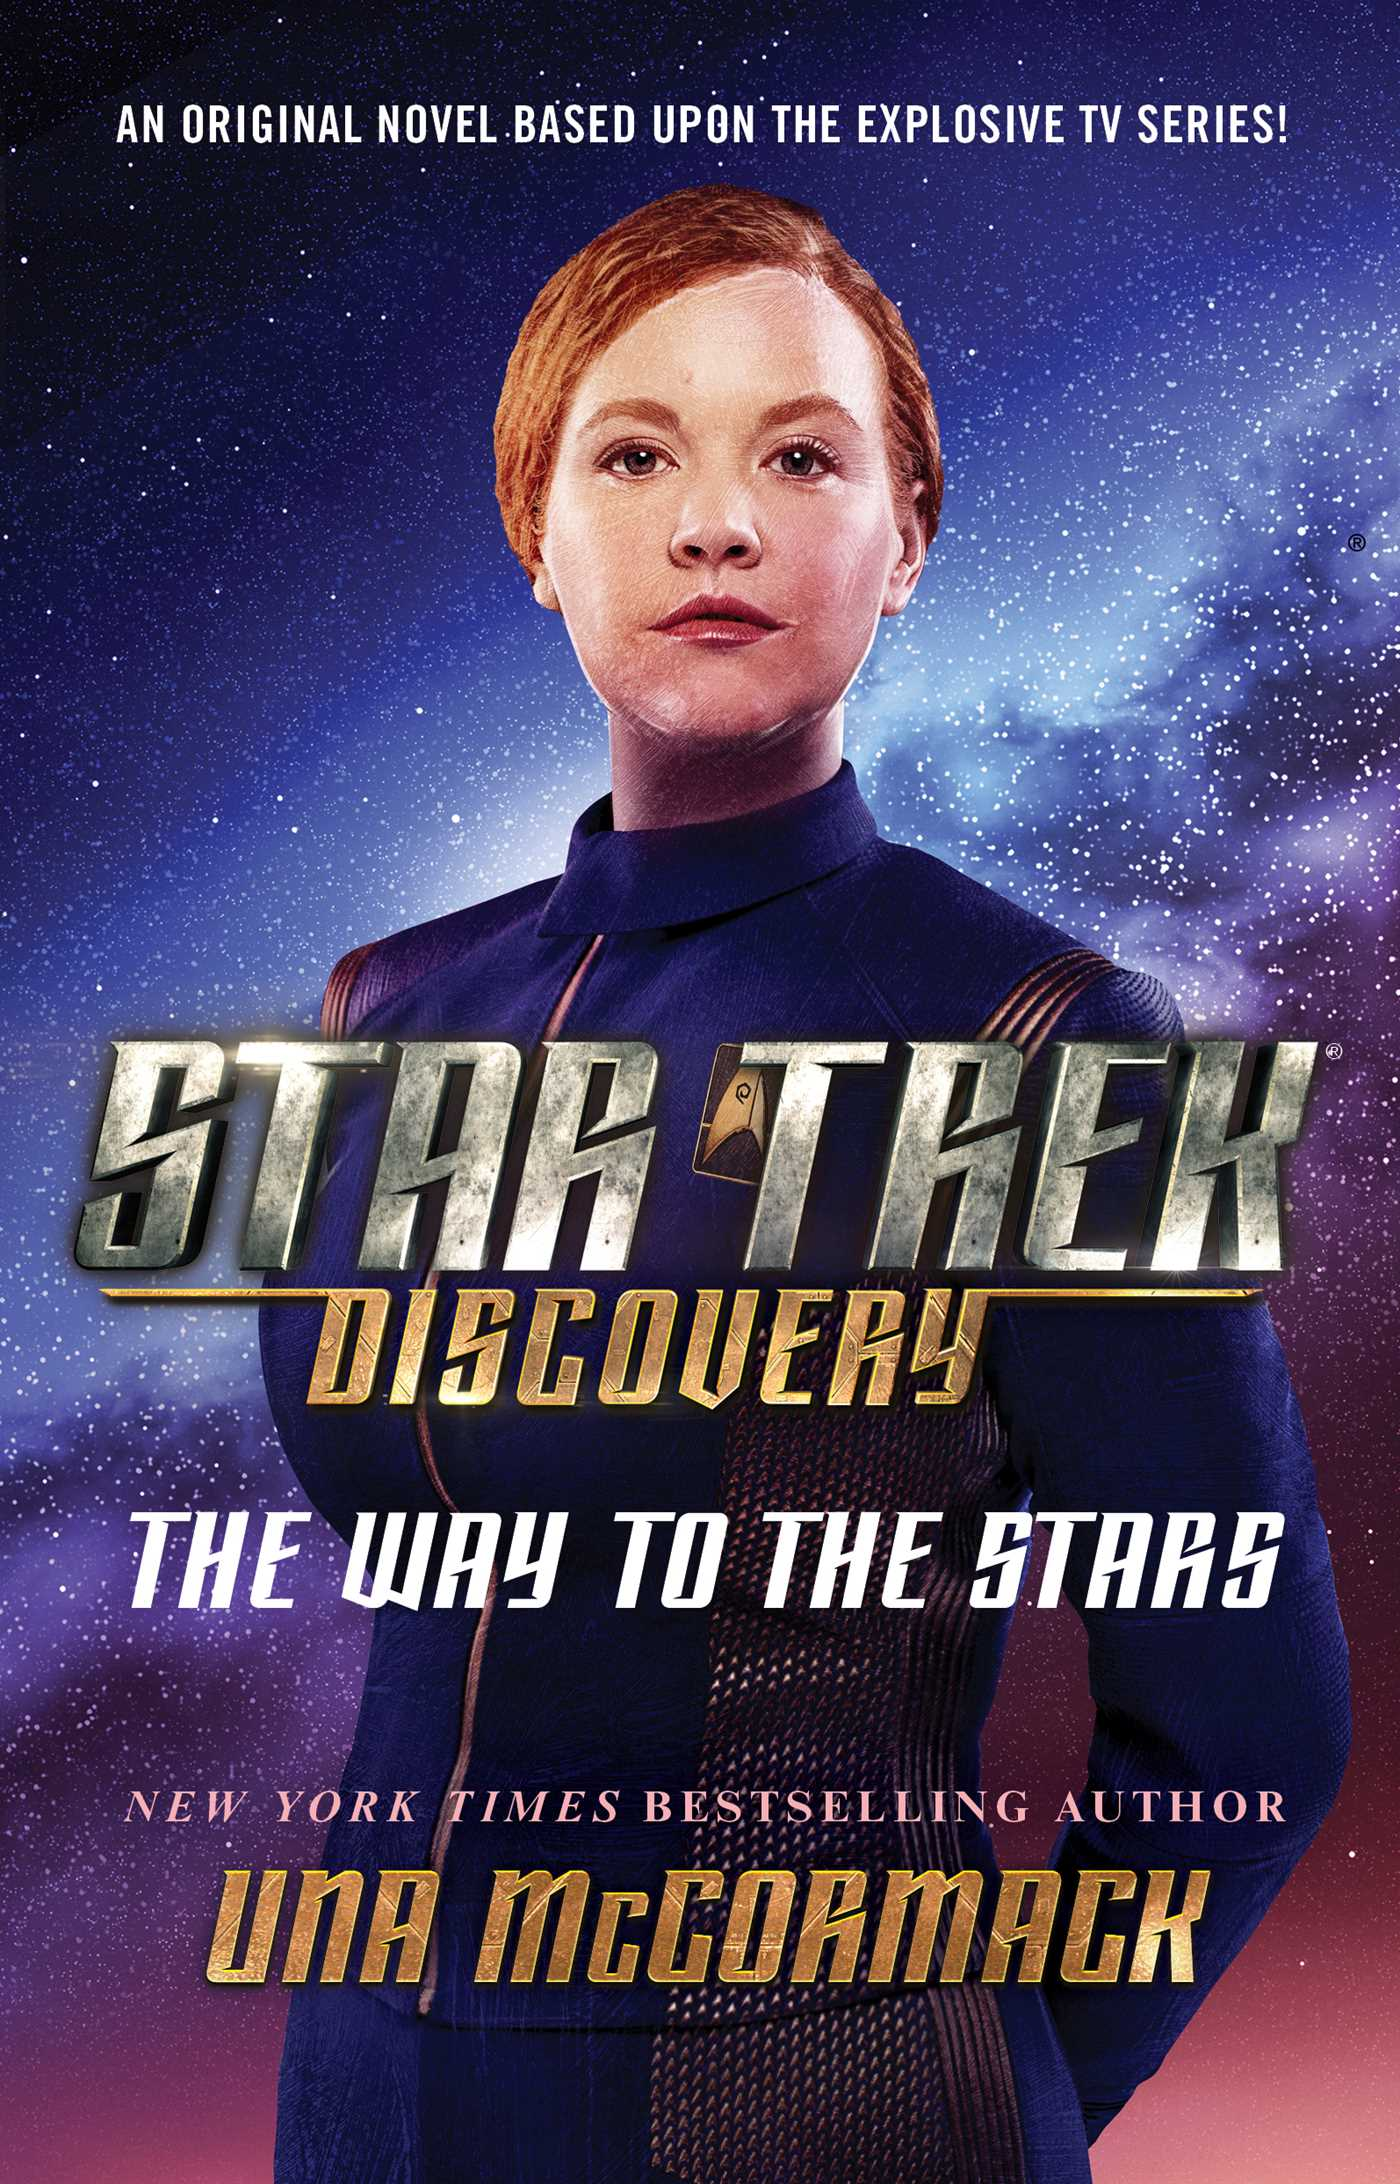 Star trek discovery the way to the stars 9781982104757 hr